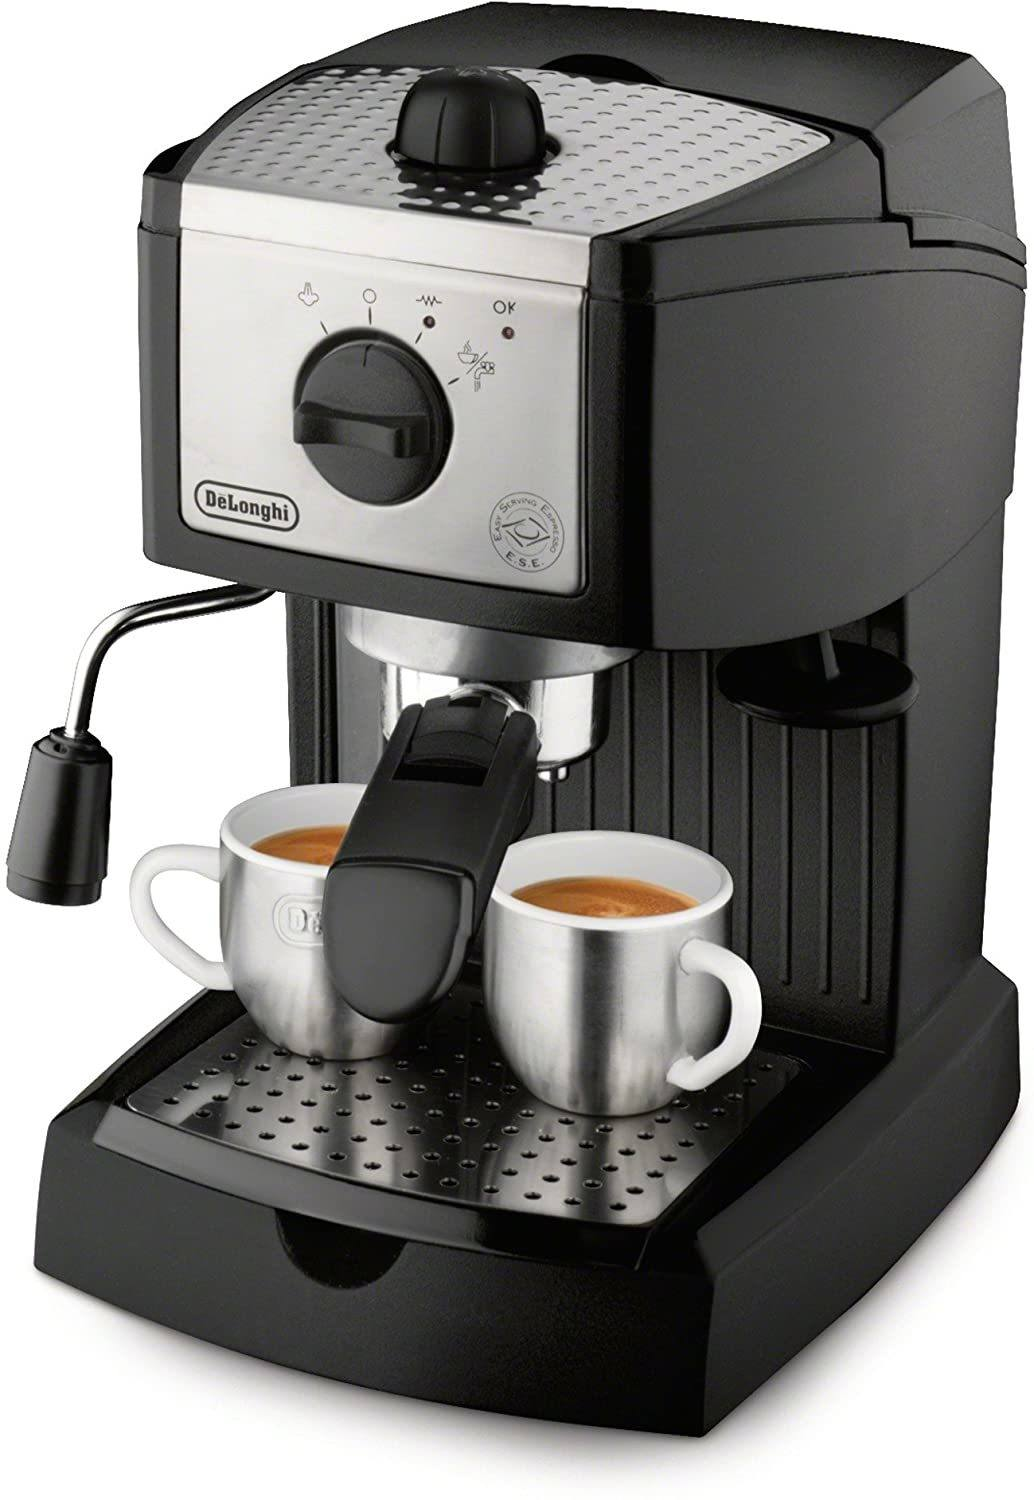 De'Longhi EC155 15 Bar Pump Manual Espresso and Cappuccino Maker